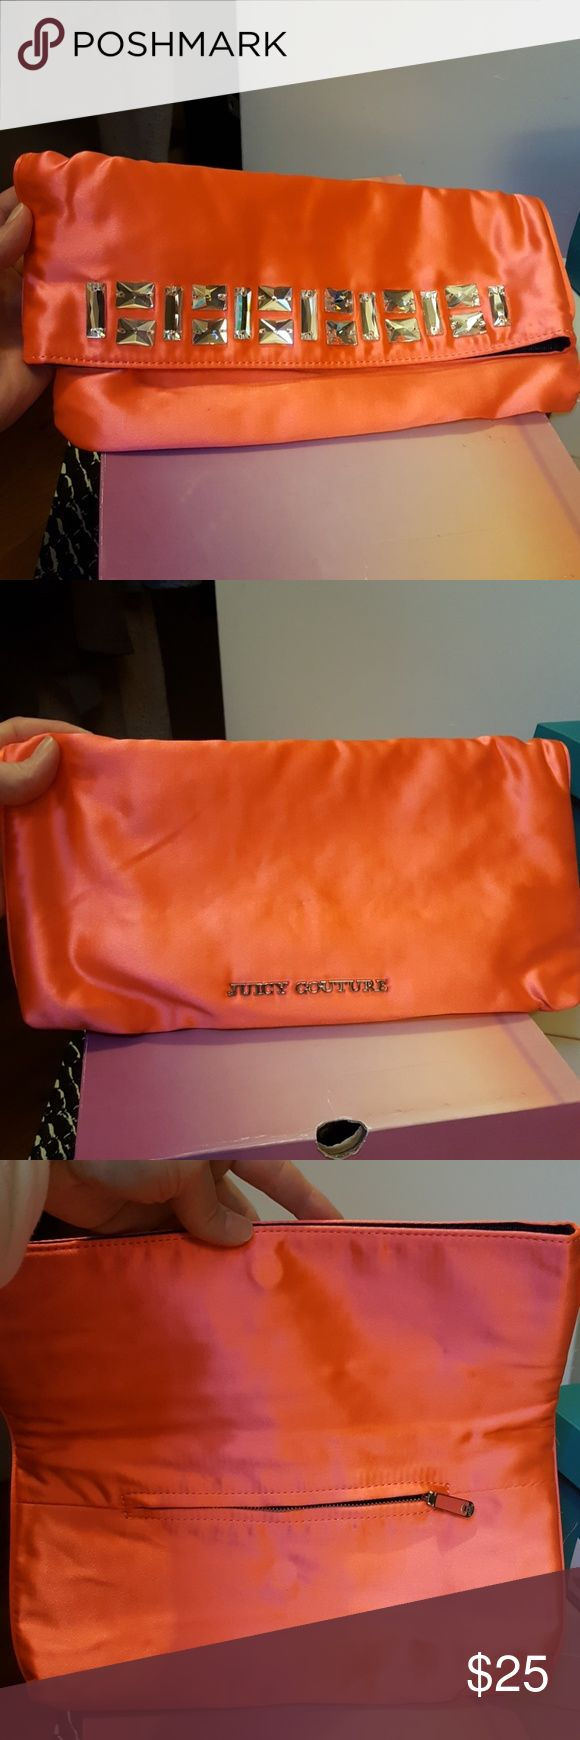 Purse This Juicy Couture metallic orange clutch has a magnetic close and is great statement piece. Never been used. Bought for a party that was cancelled :-\ Juicy Couture Bags Clutches & Wristlets